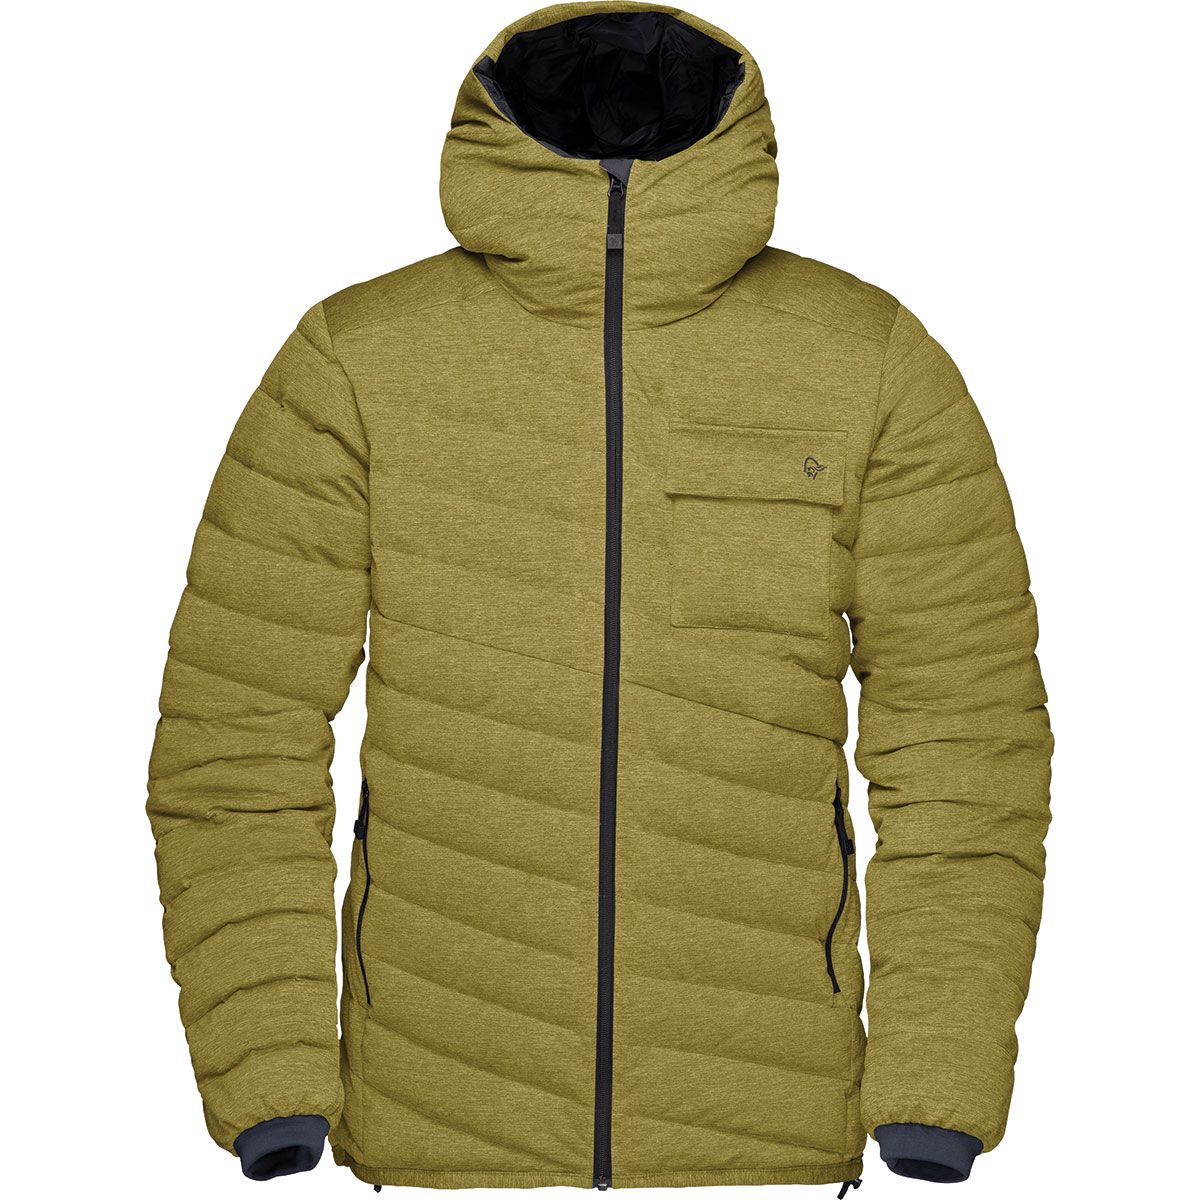 Norrona Damen Tamok Lighteight Down 750 Jacke (Größe XS, Oliv) | Isolationsjacken > Damen